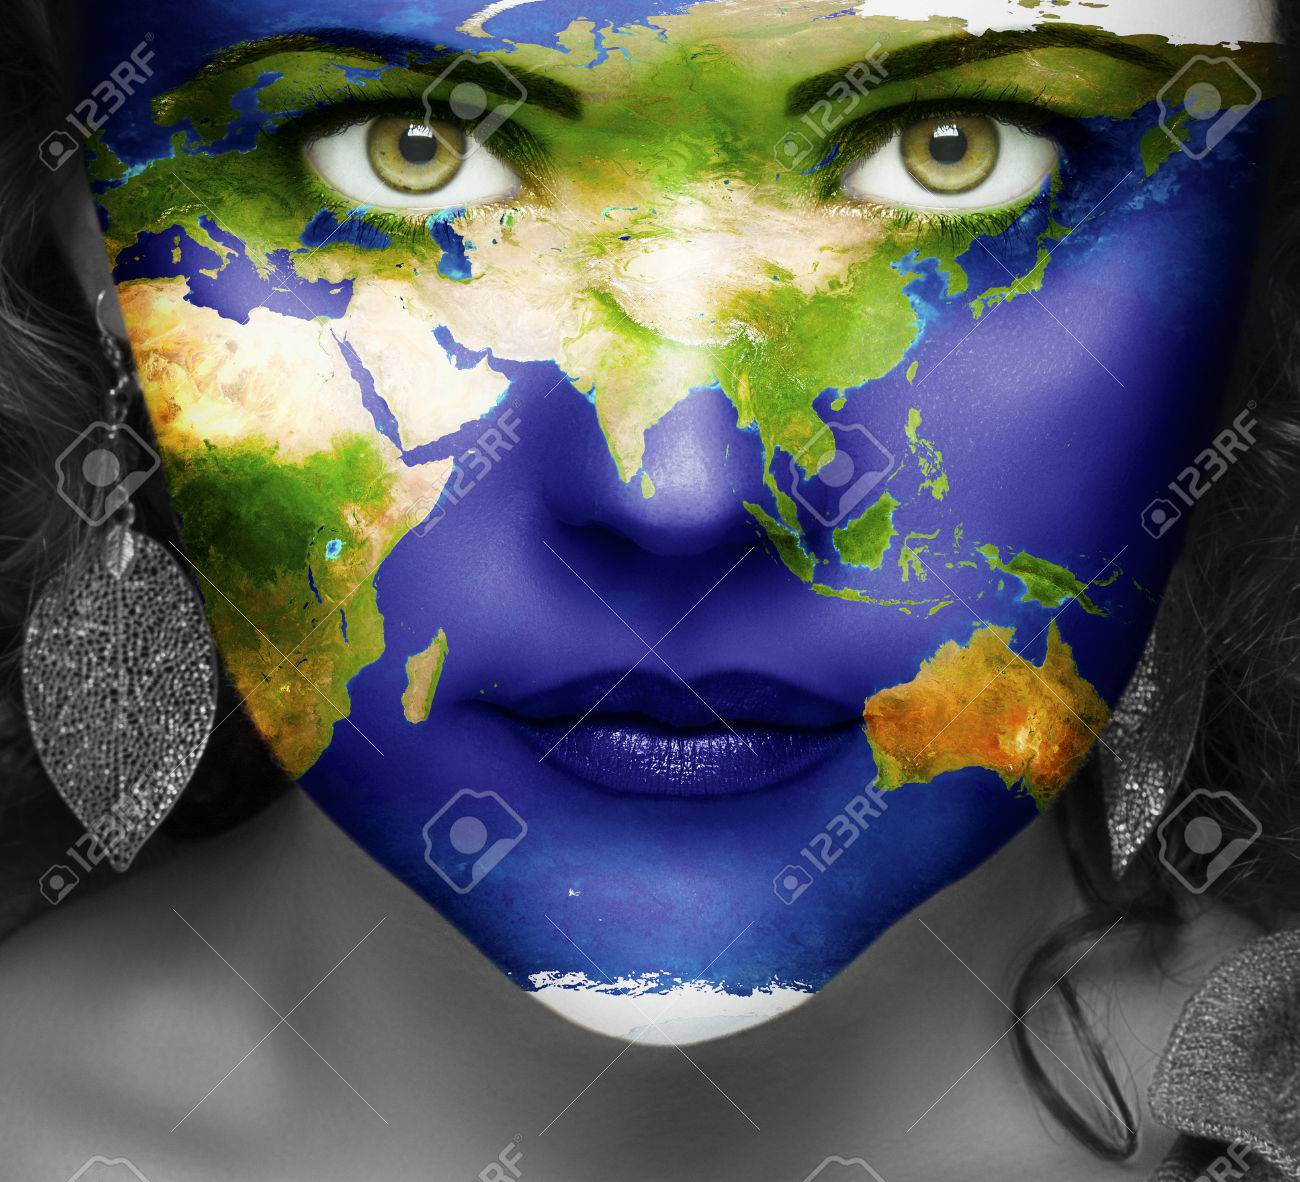 Map Of The World On Face Of Girl With Green Eyes Stock Photo